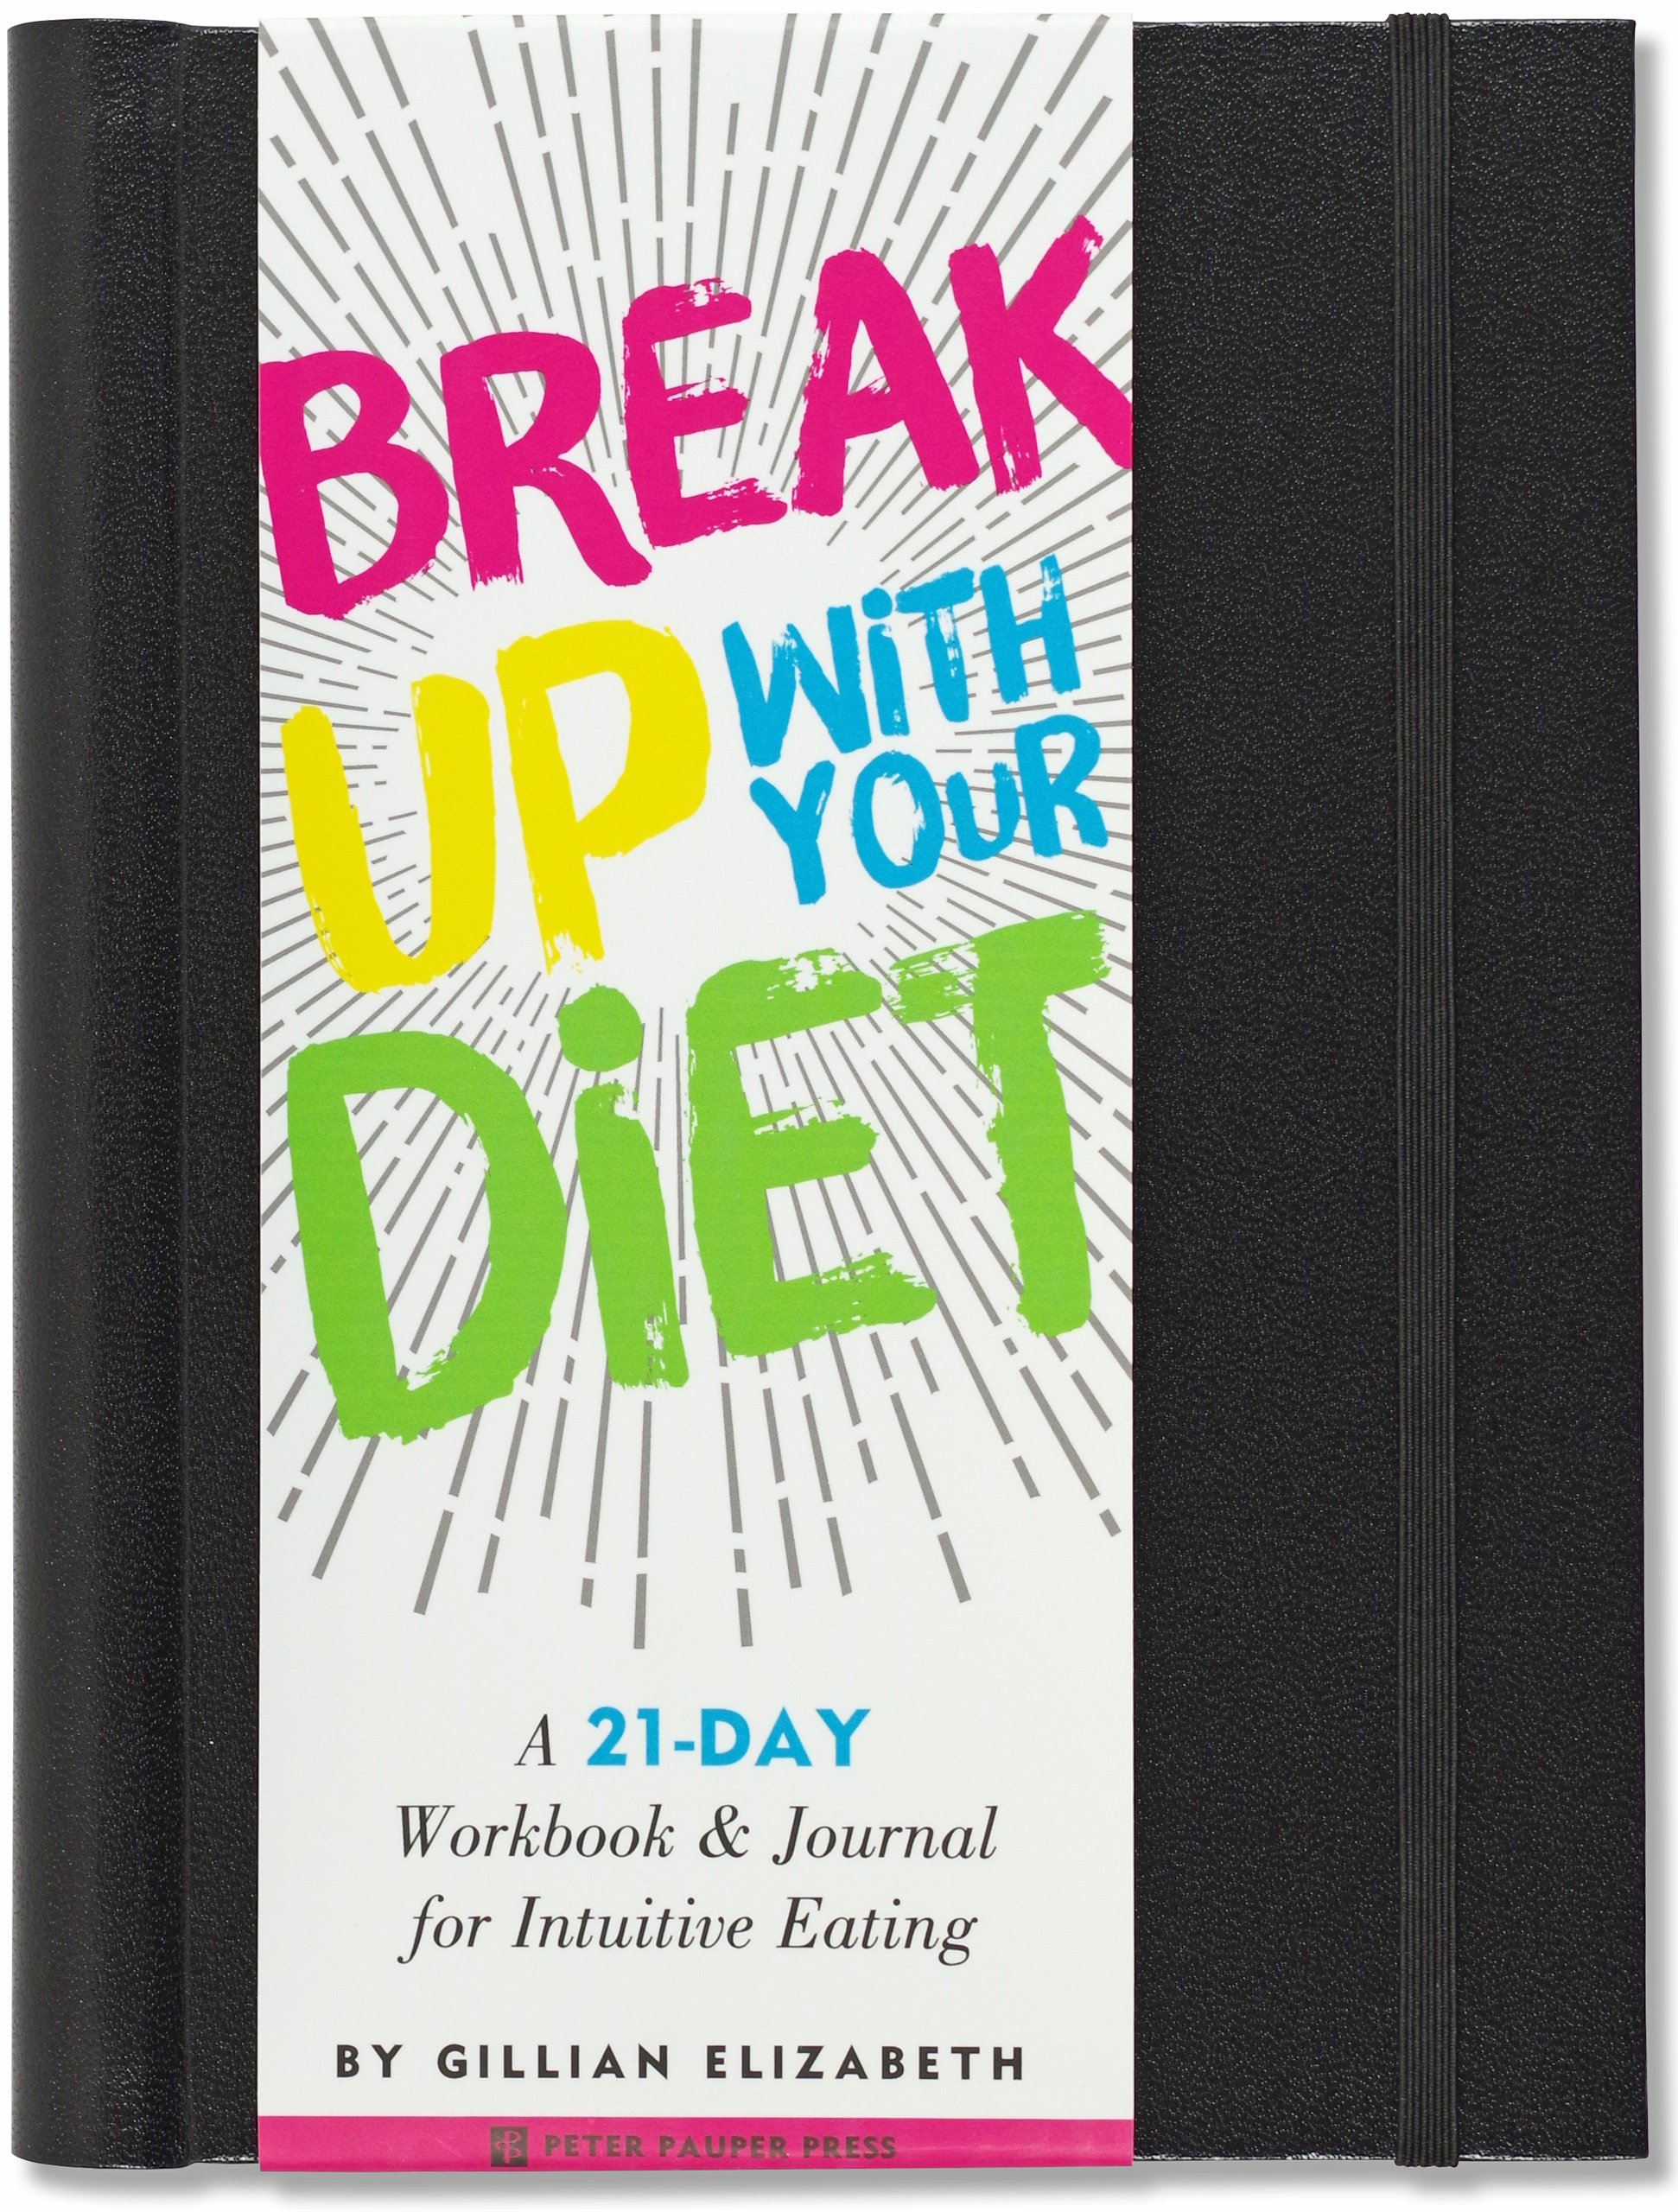 Break up with your diet a 21 day workbook journal for intuitive break up with your diet a 21 day workbook journal for intuitive eating gillian elizabeth 9781441323729 amazon books fandeluxe Choice Image